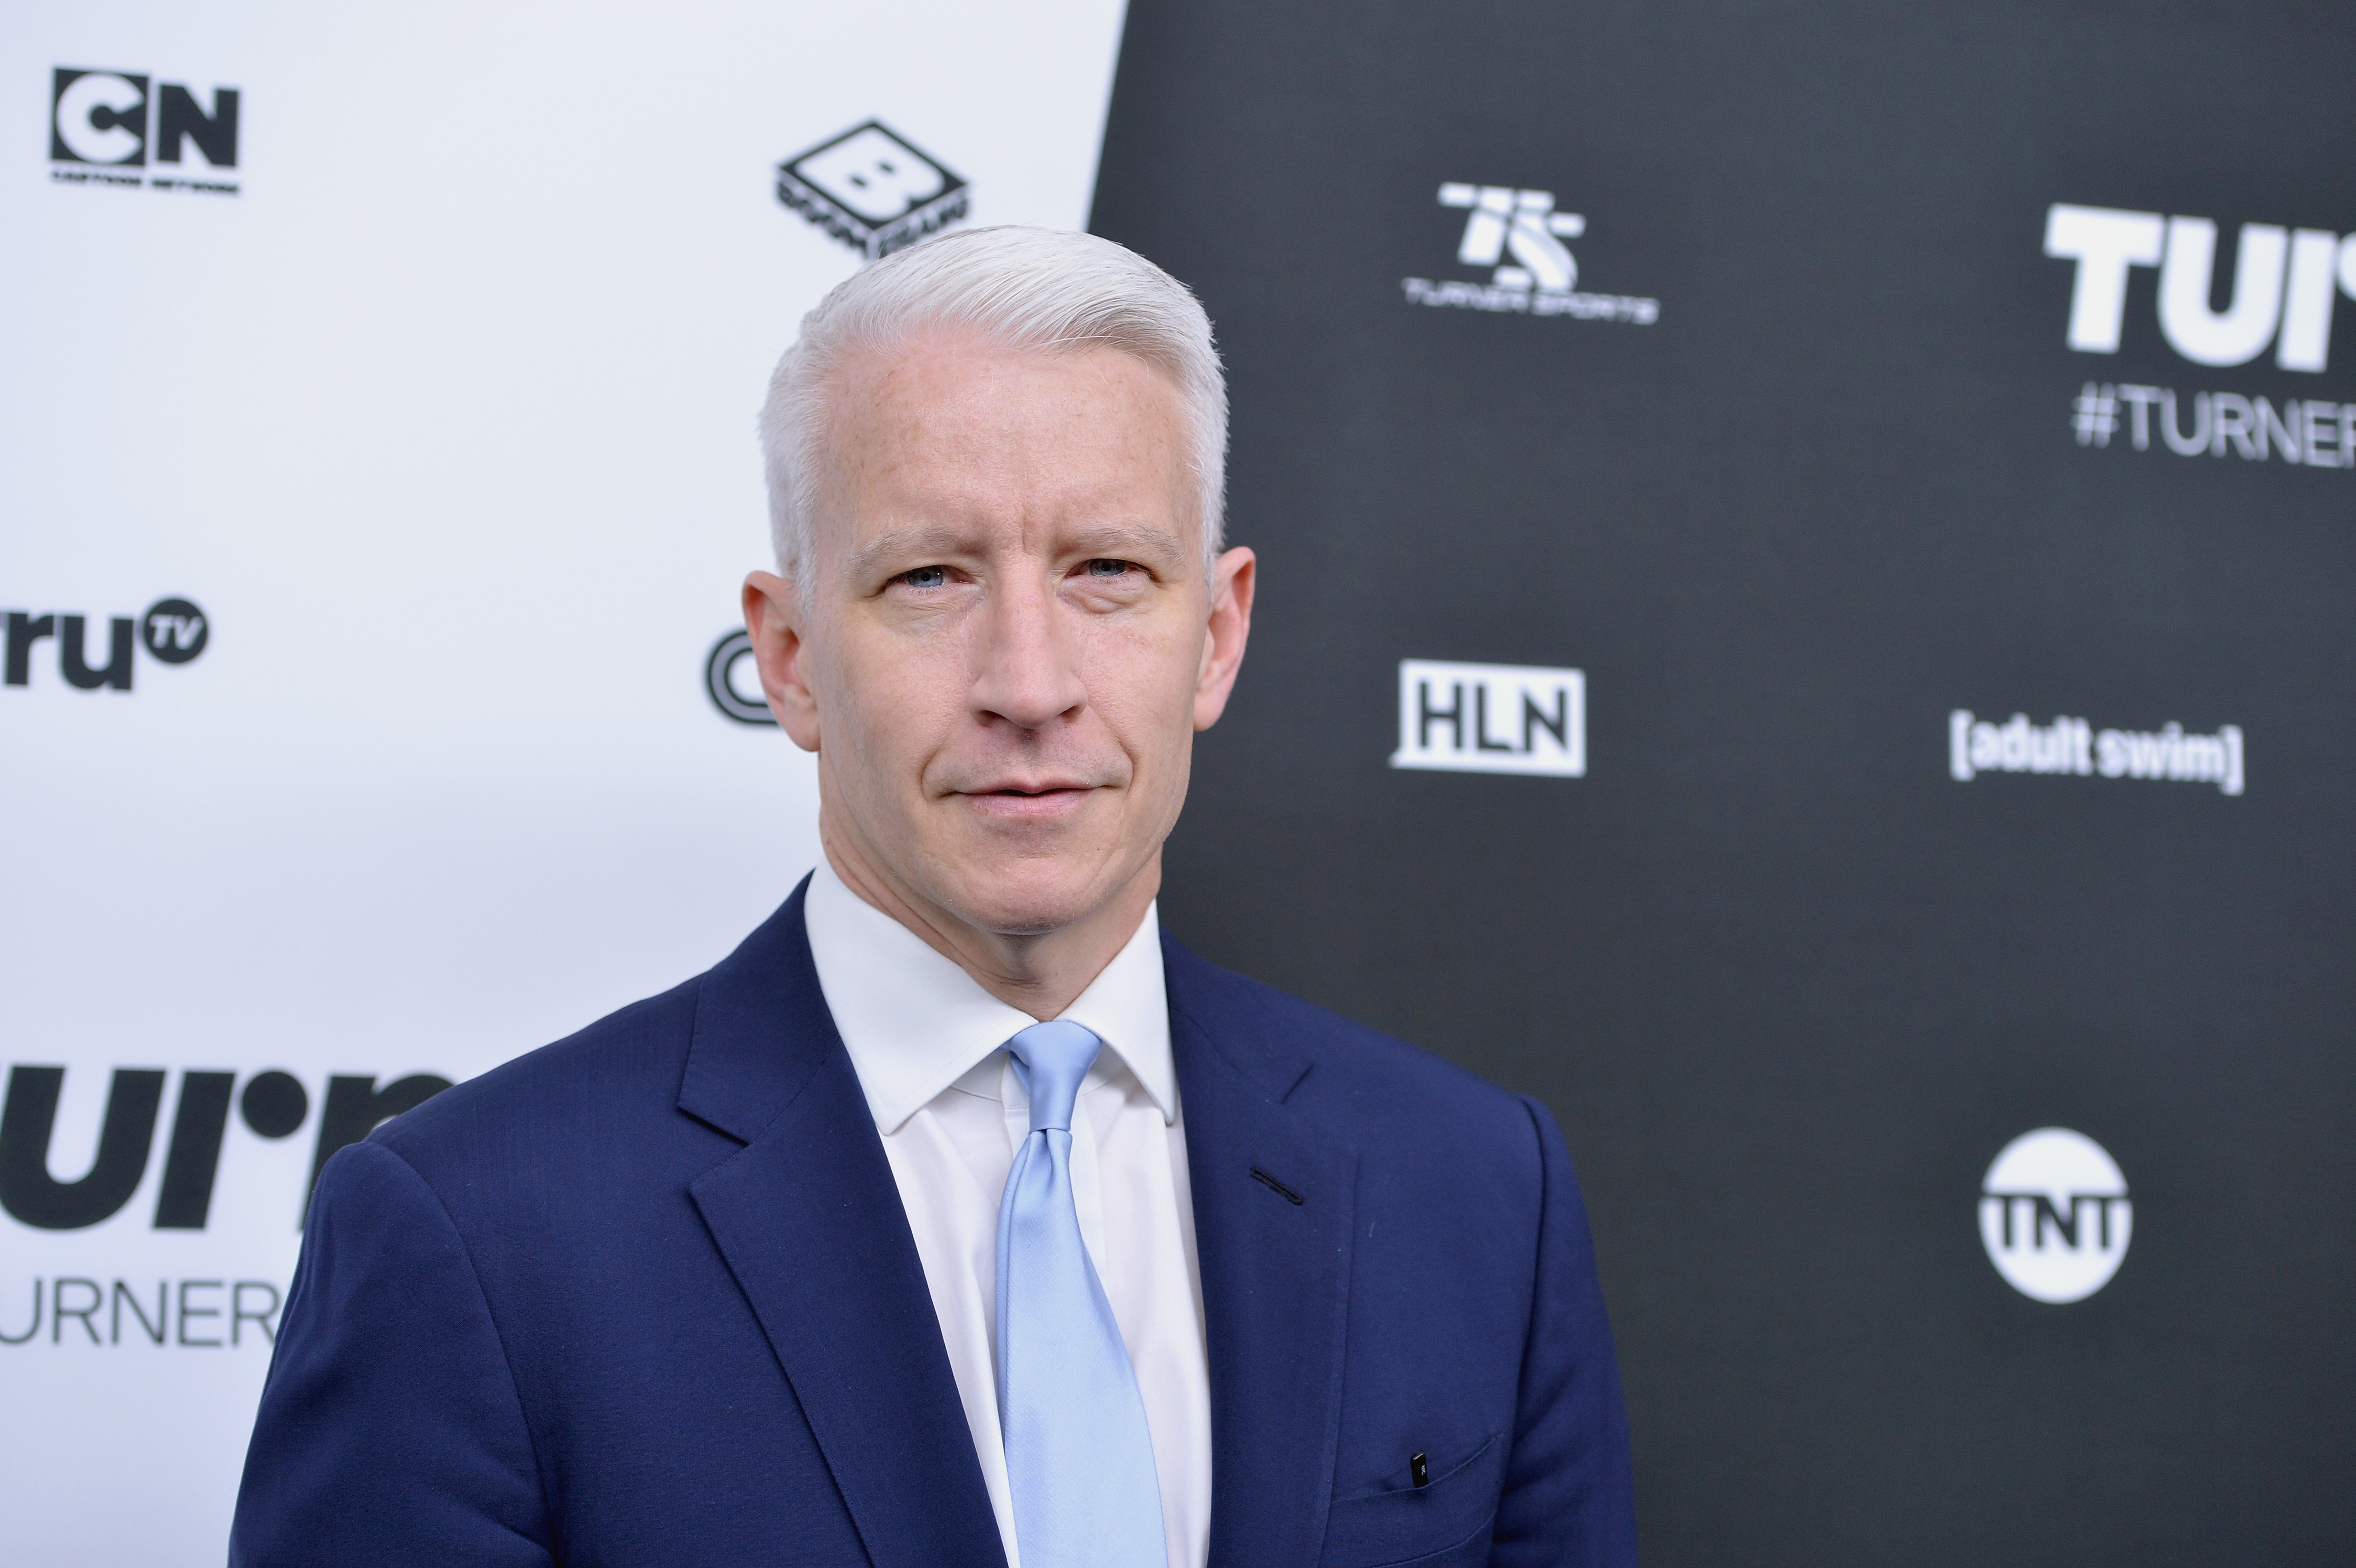 Anderson Cooper Image Source: Getty Images.